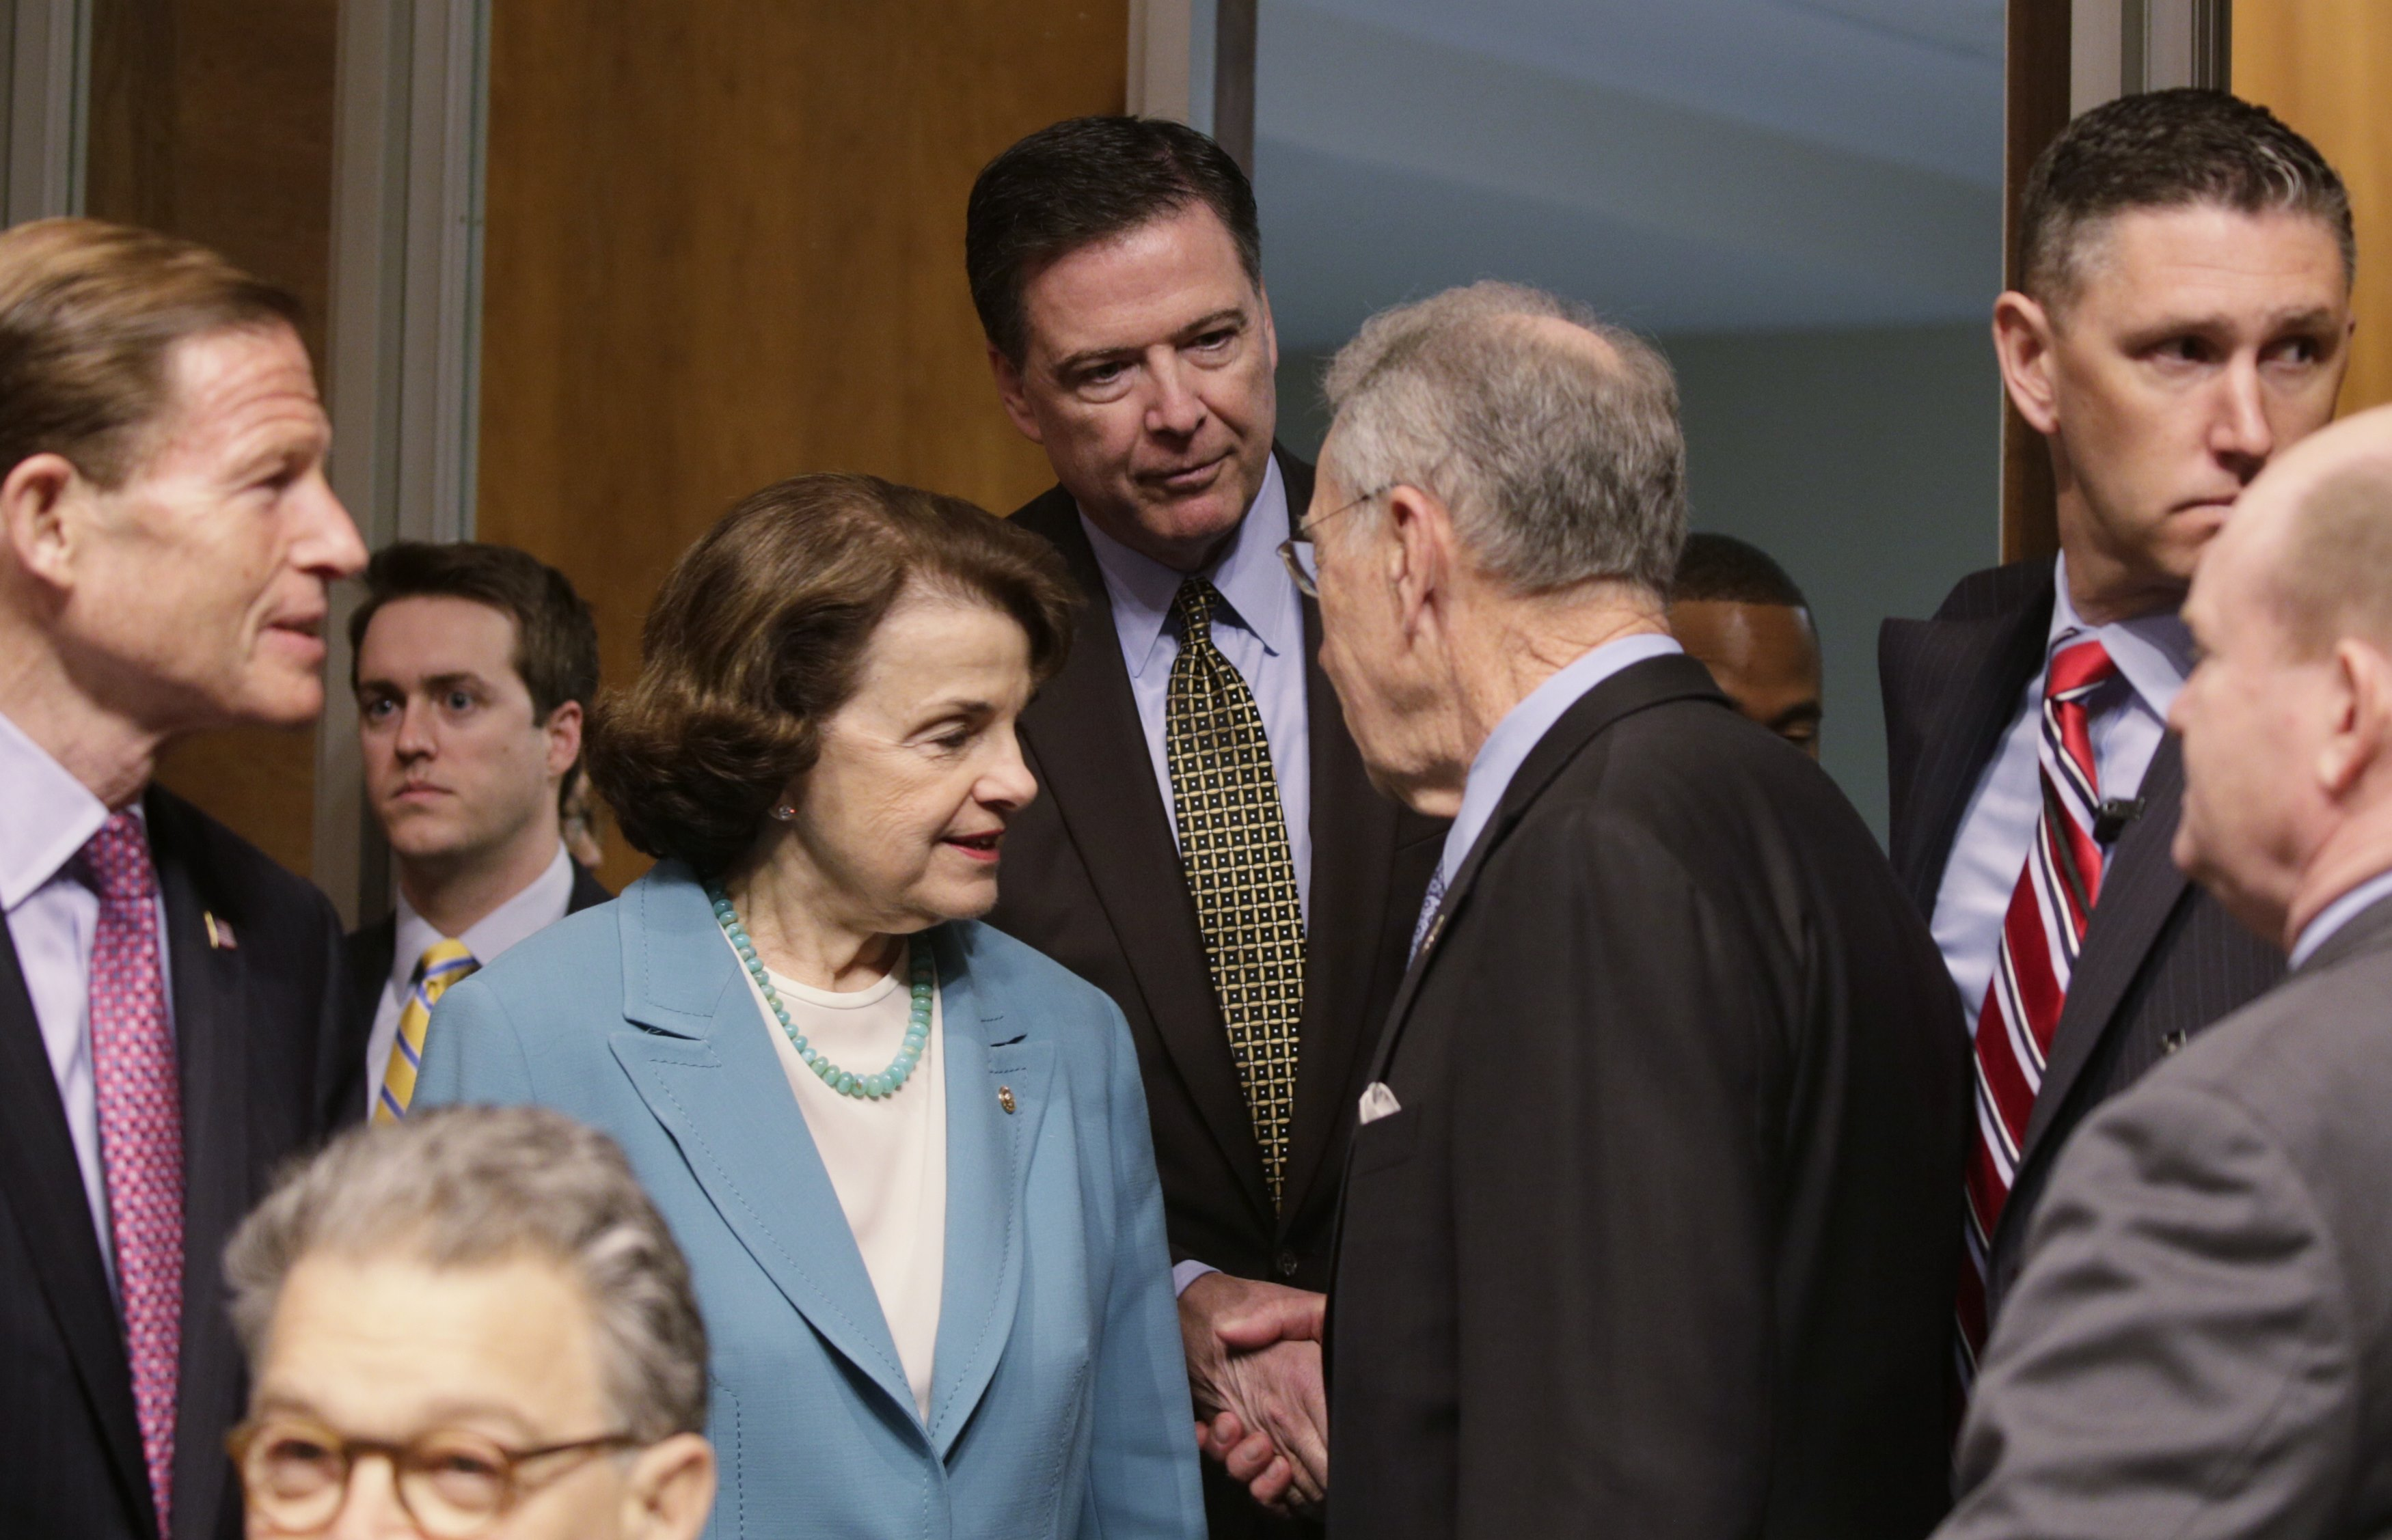 "FBI Director James Comey (C) is greeted by ranking member Sen. Dianne Feinstein (D-CA) (3rdL) and Committee Chairman Chuck Grassley (R-IA) (3rdR) as he arrives to testify before a Senate Judiciary Committee hearing on ""Oversight of the Federal Bureau of Investigation"" on Capitol Hill in Washington on May 3, 2017. (REUTERS/Kevin Lamarque)"